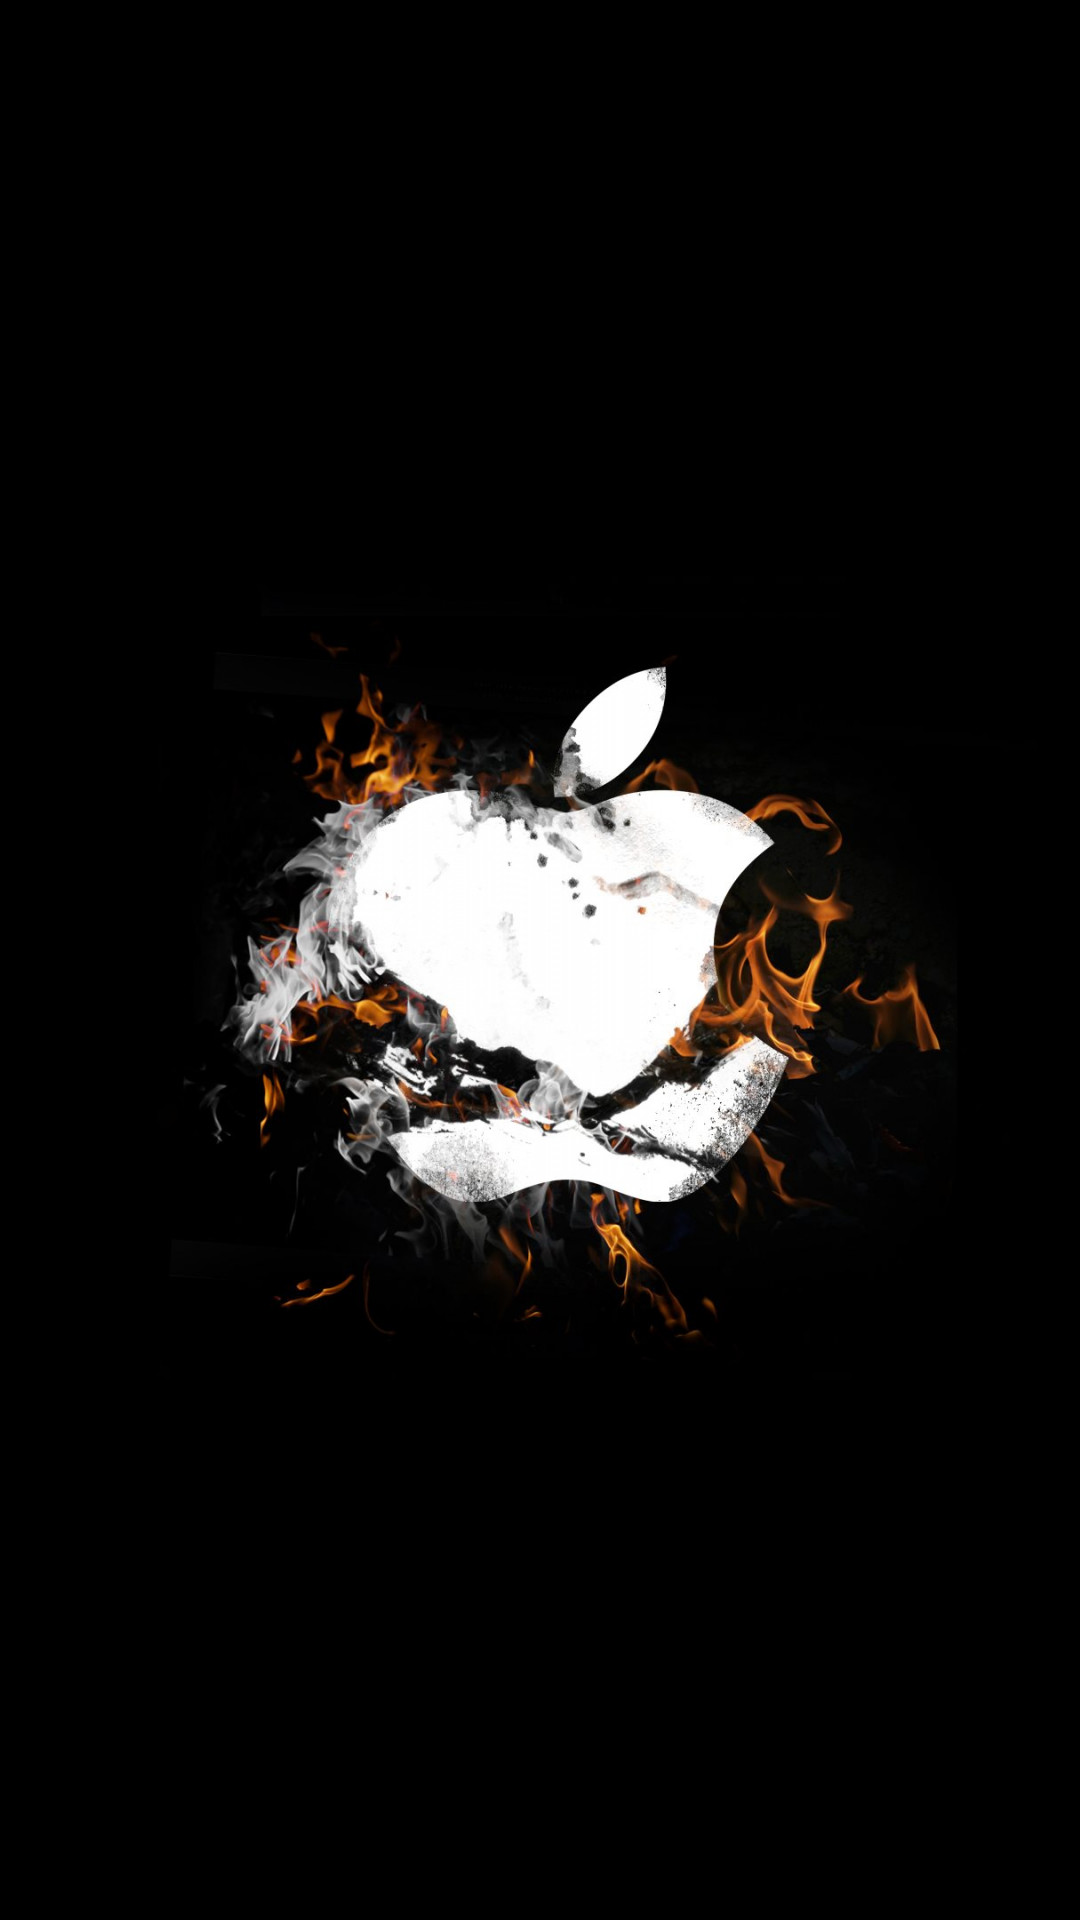 The Apple is on fire | 1080x1920 wallpaper